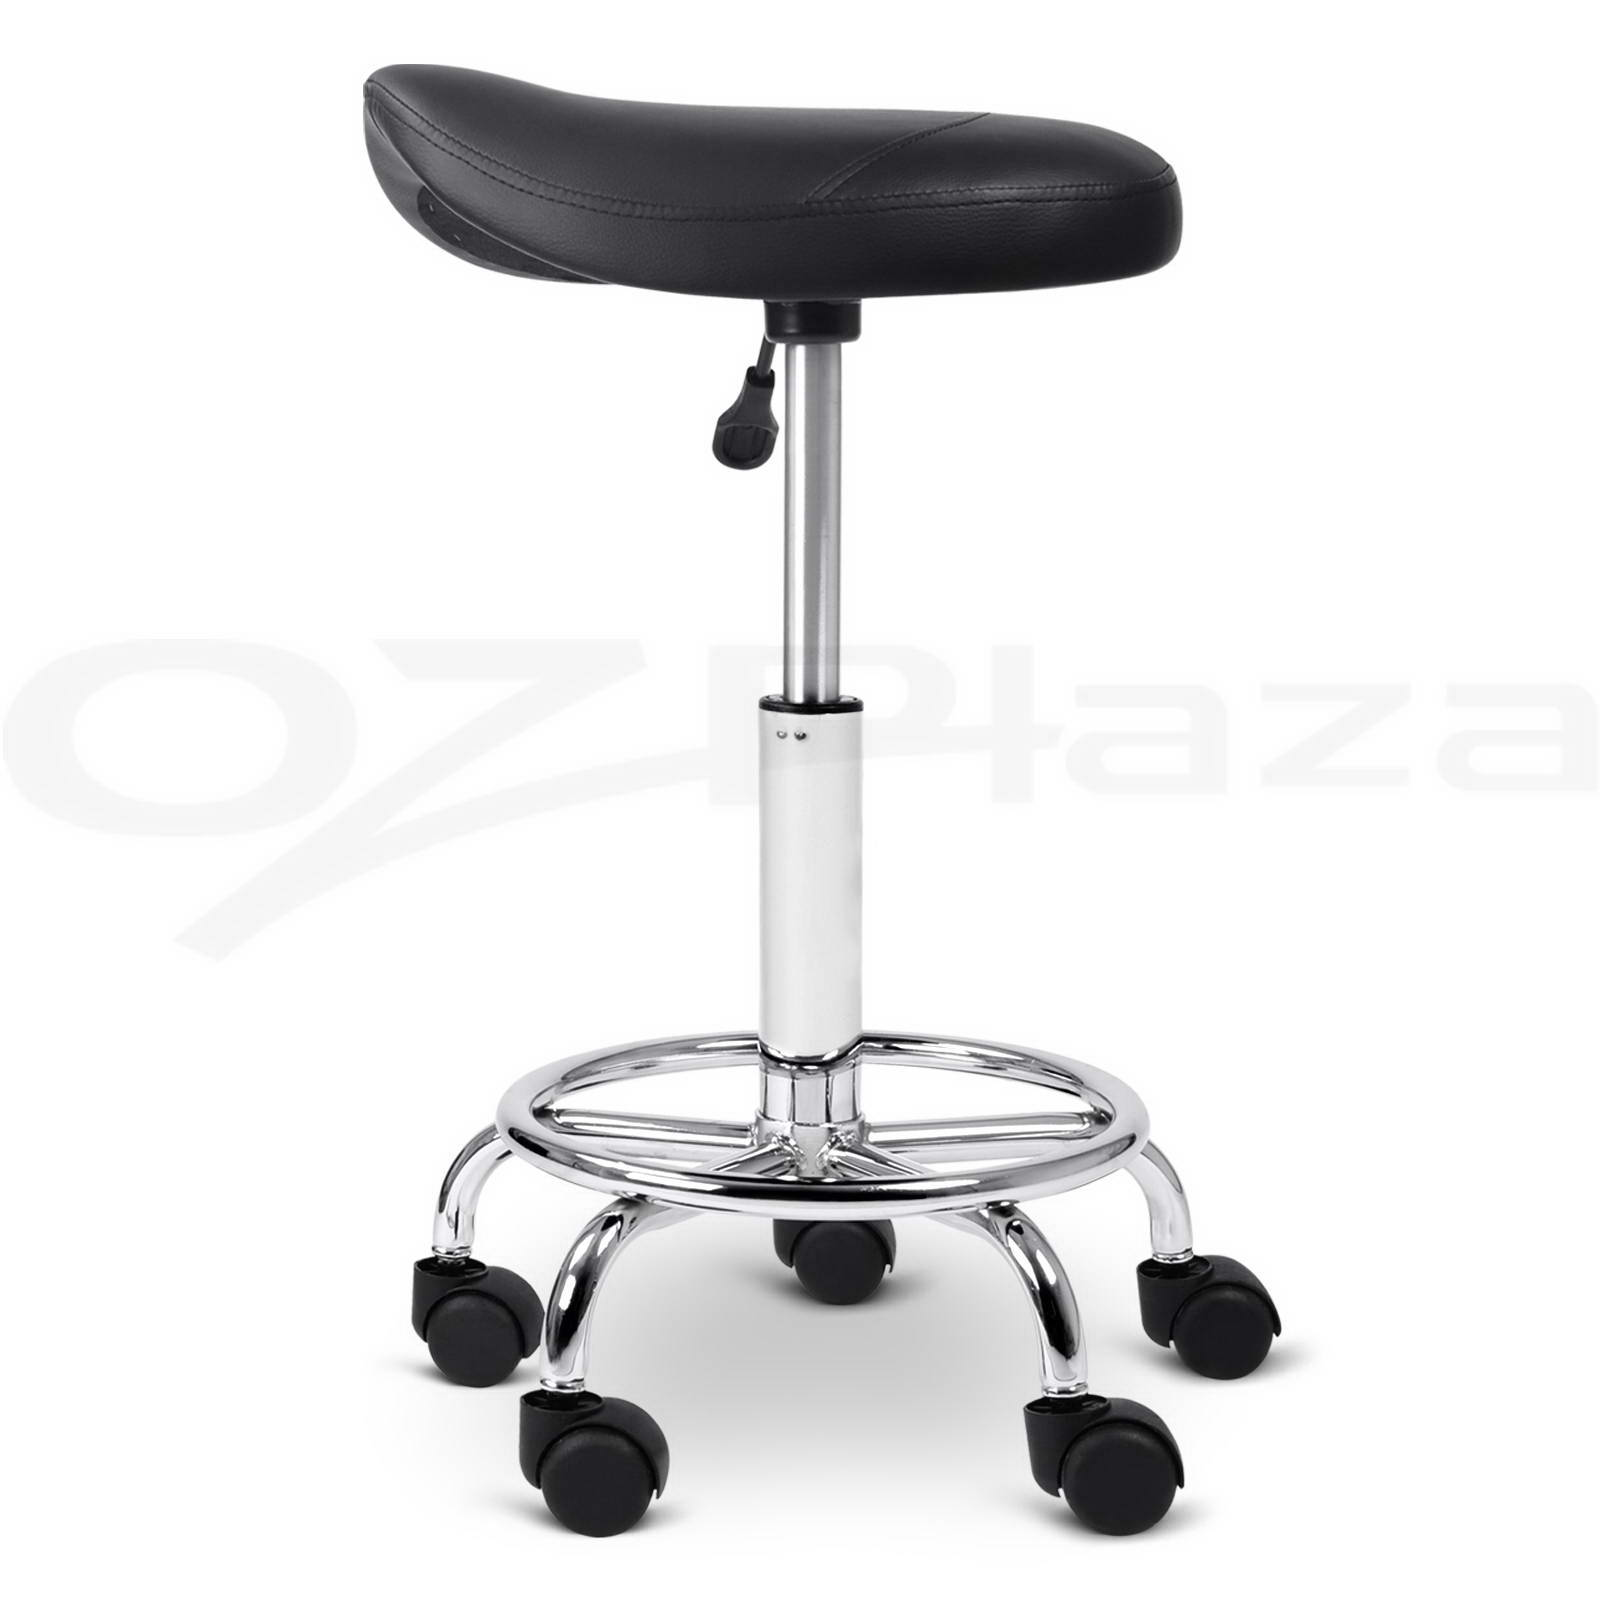 salon chairs ebay rosewood nz stool swivel barber hairdressing saddle round chair